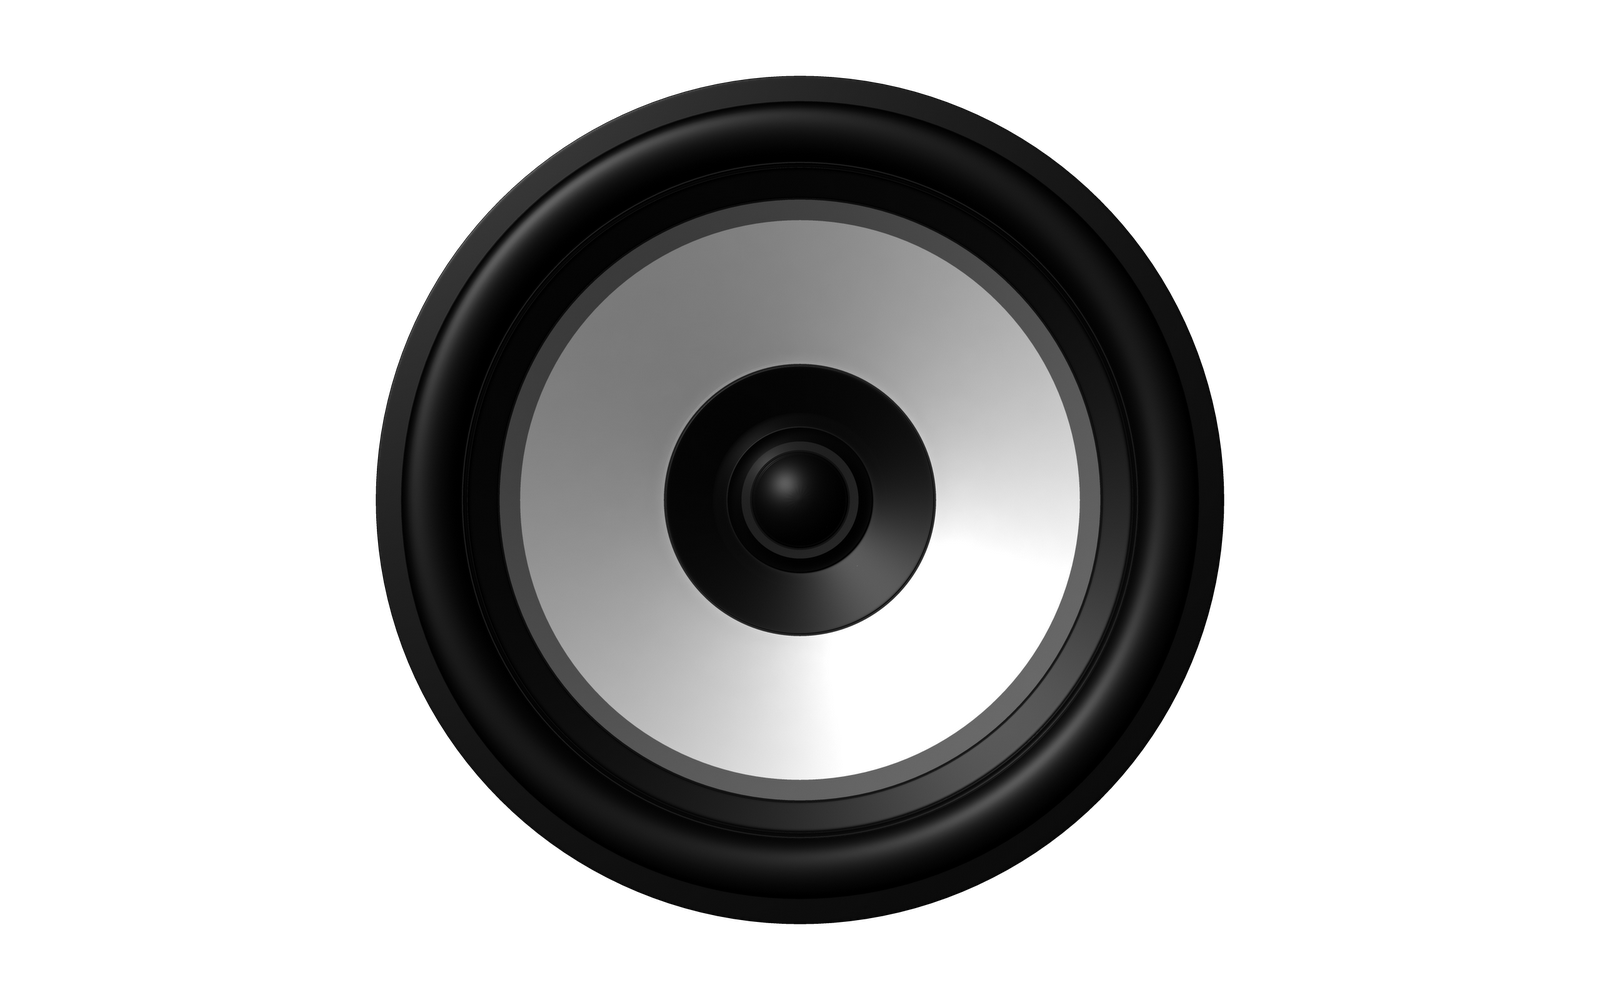 Speakers HD Music Wallpapers Stock Photos| HD Wallpapers ...